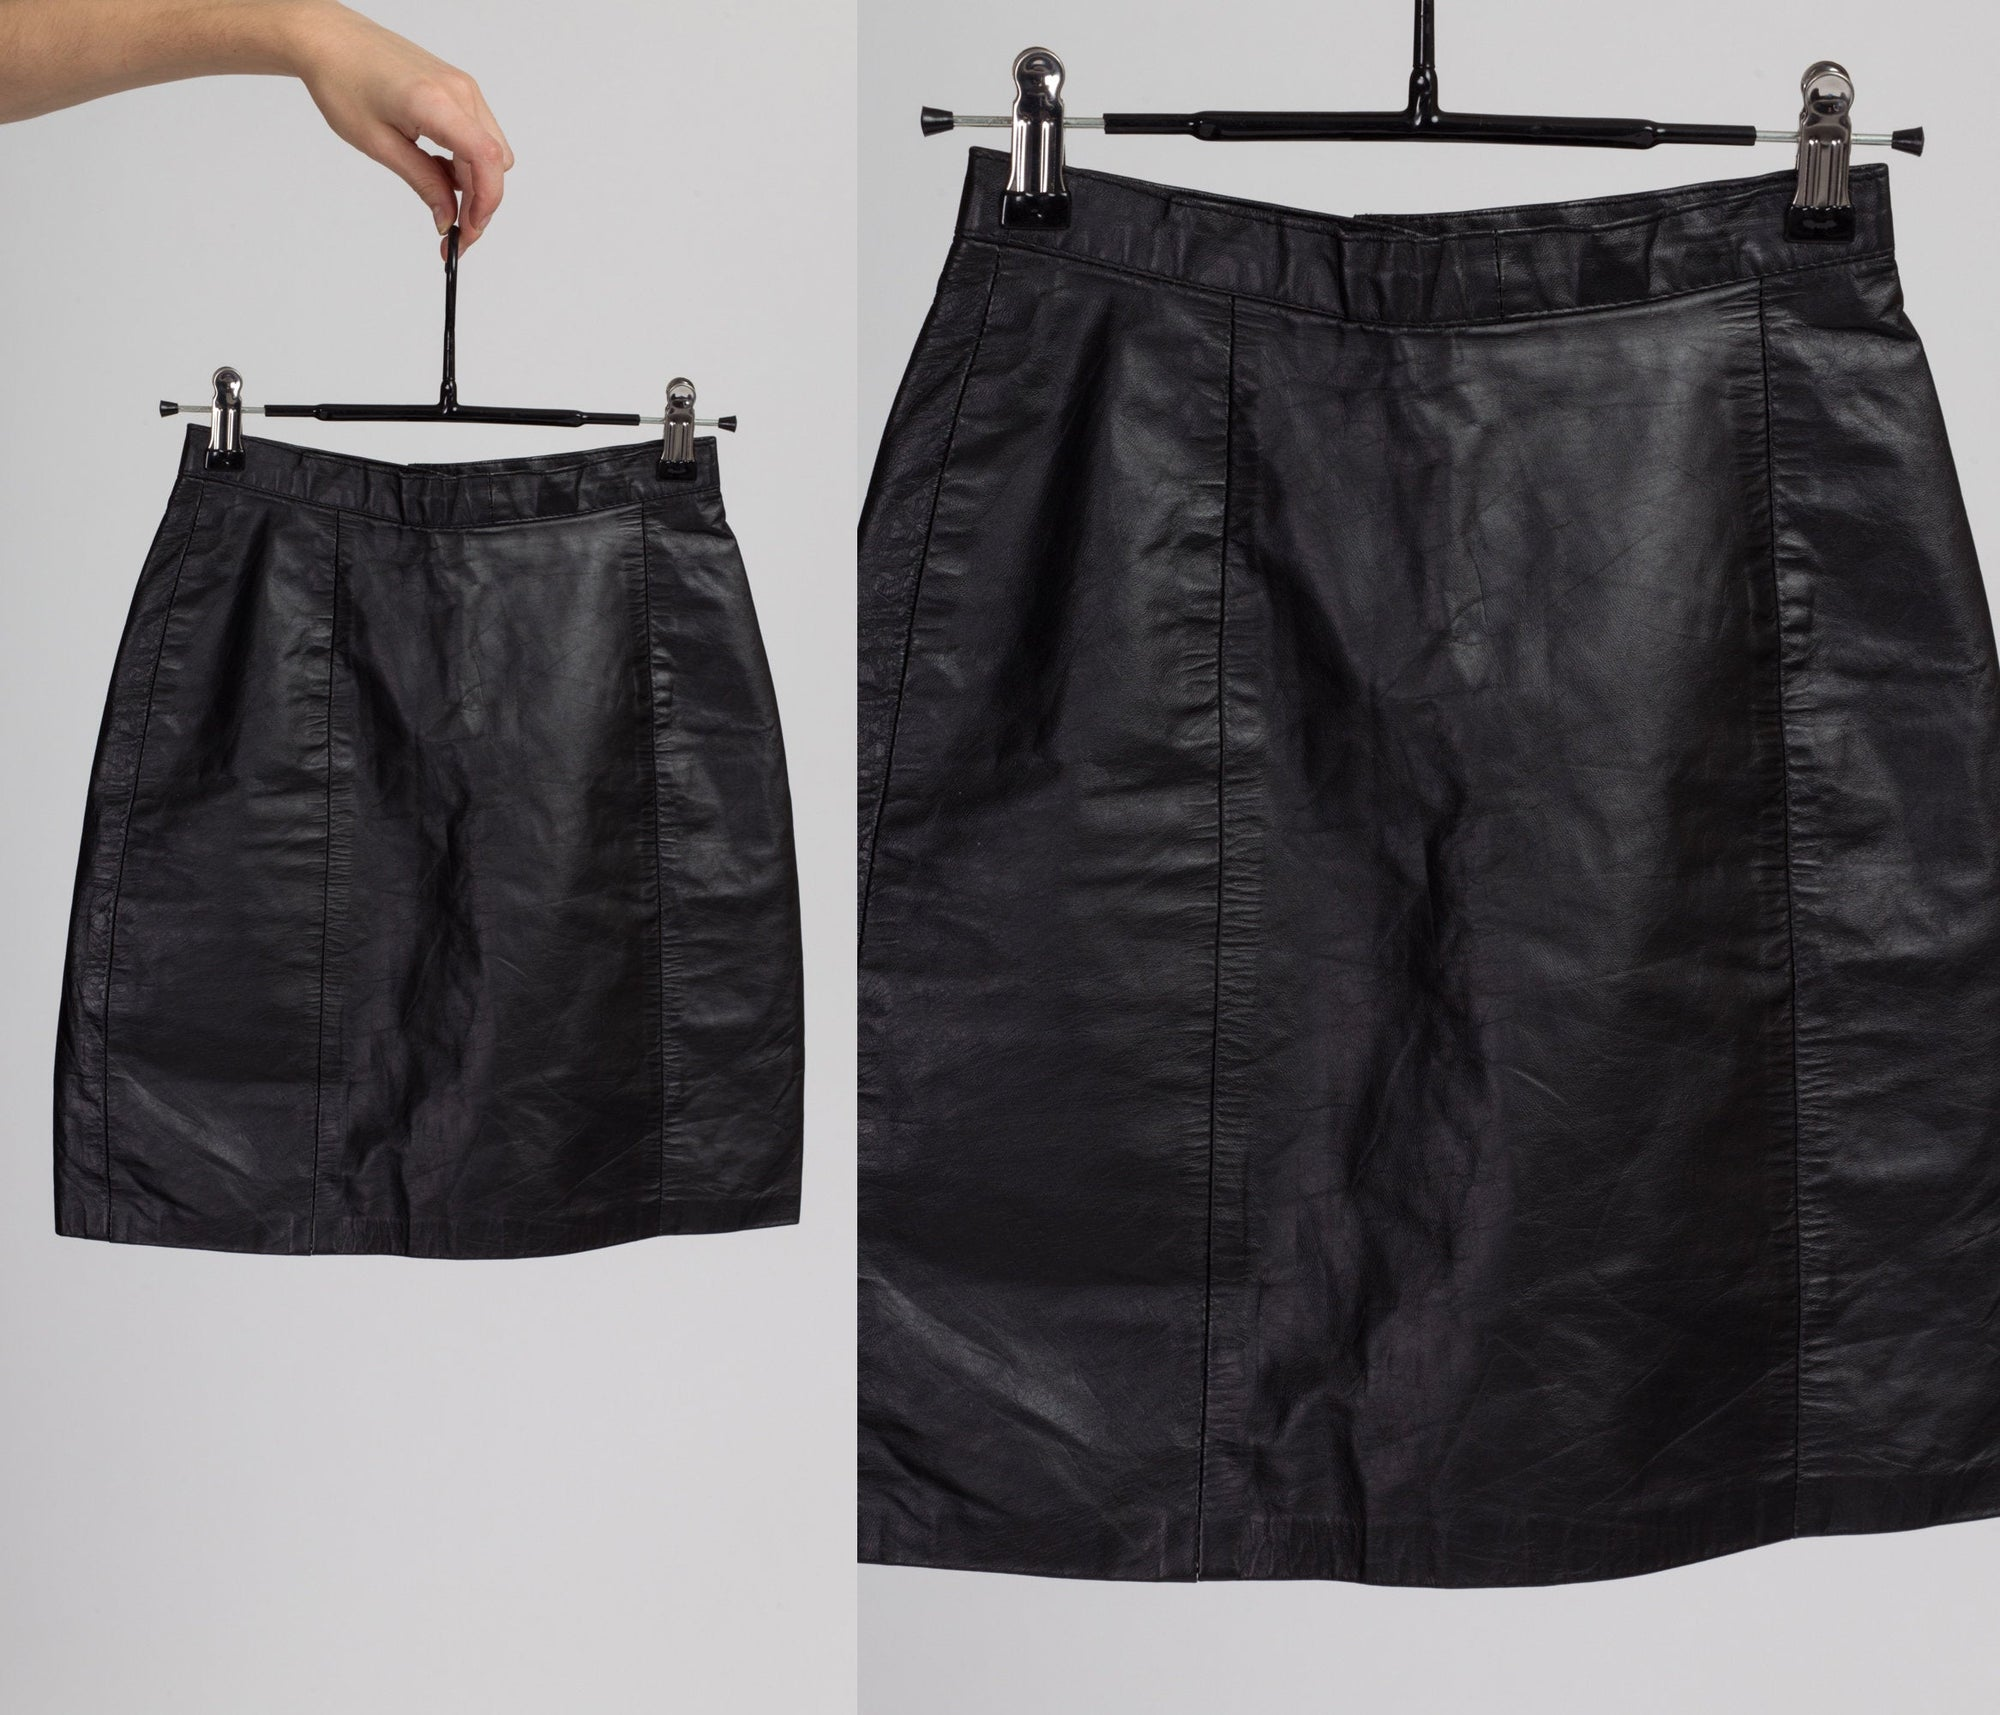 80s Black Leather Mini Skirt - Extra Small